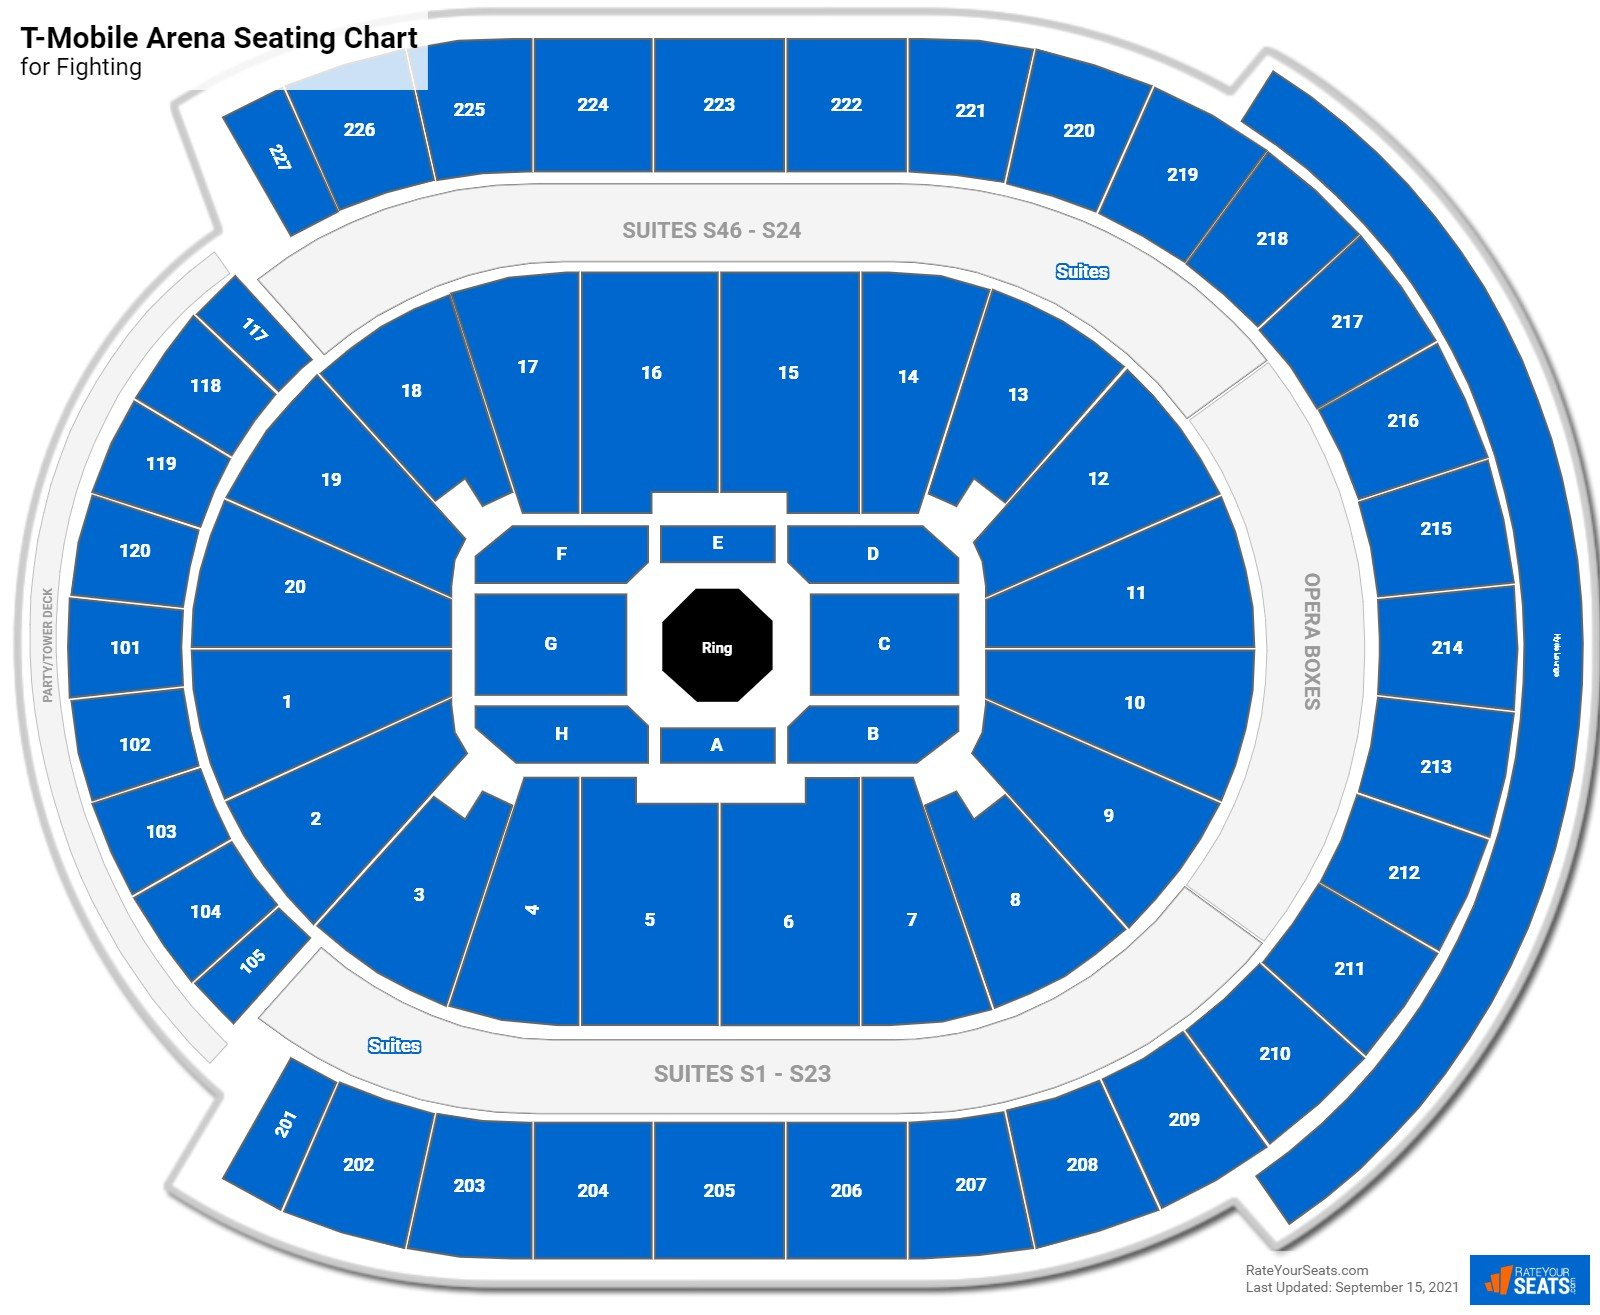 T Mobile Arena Seating Charts For Fighting Rateyourseats Com